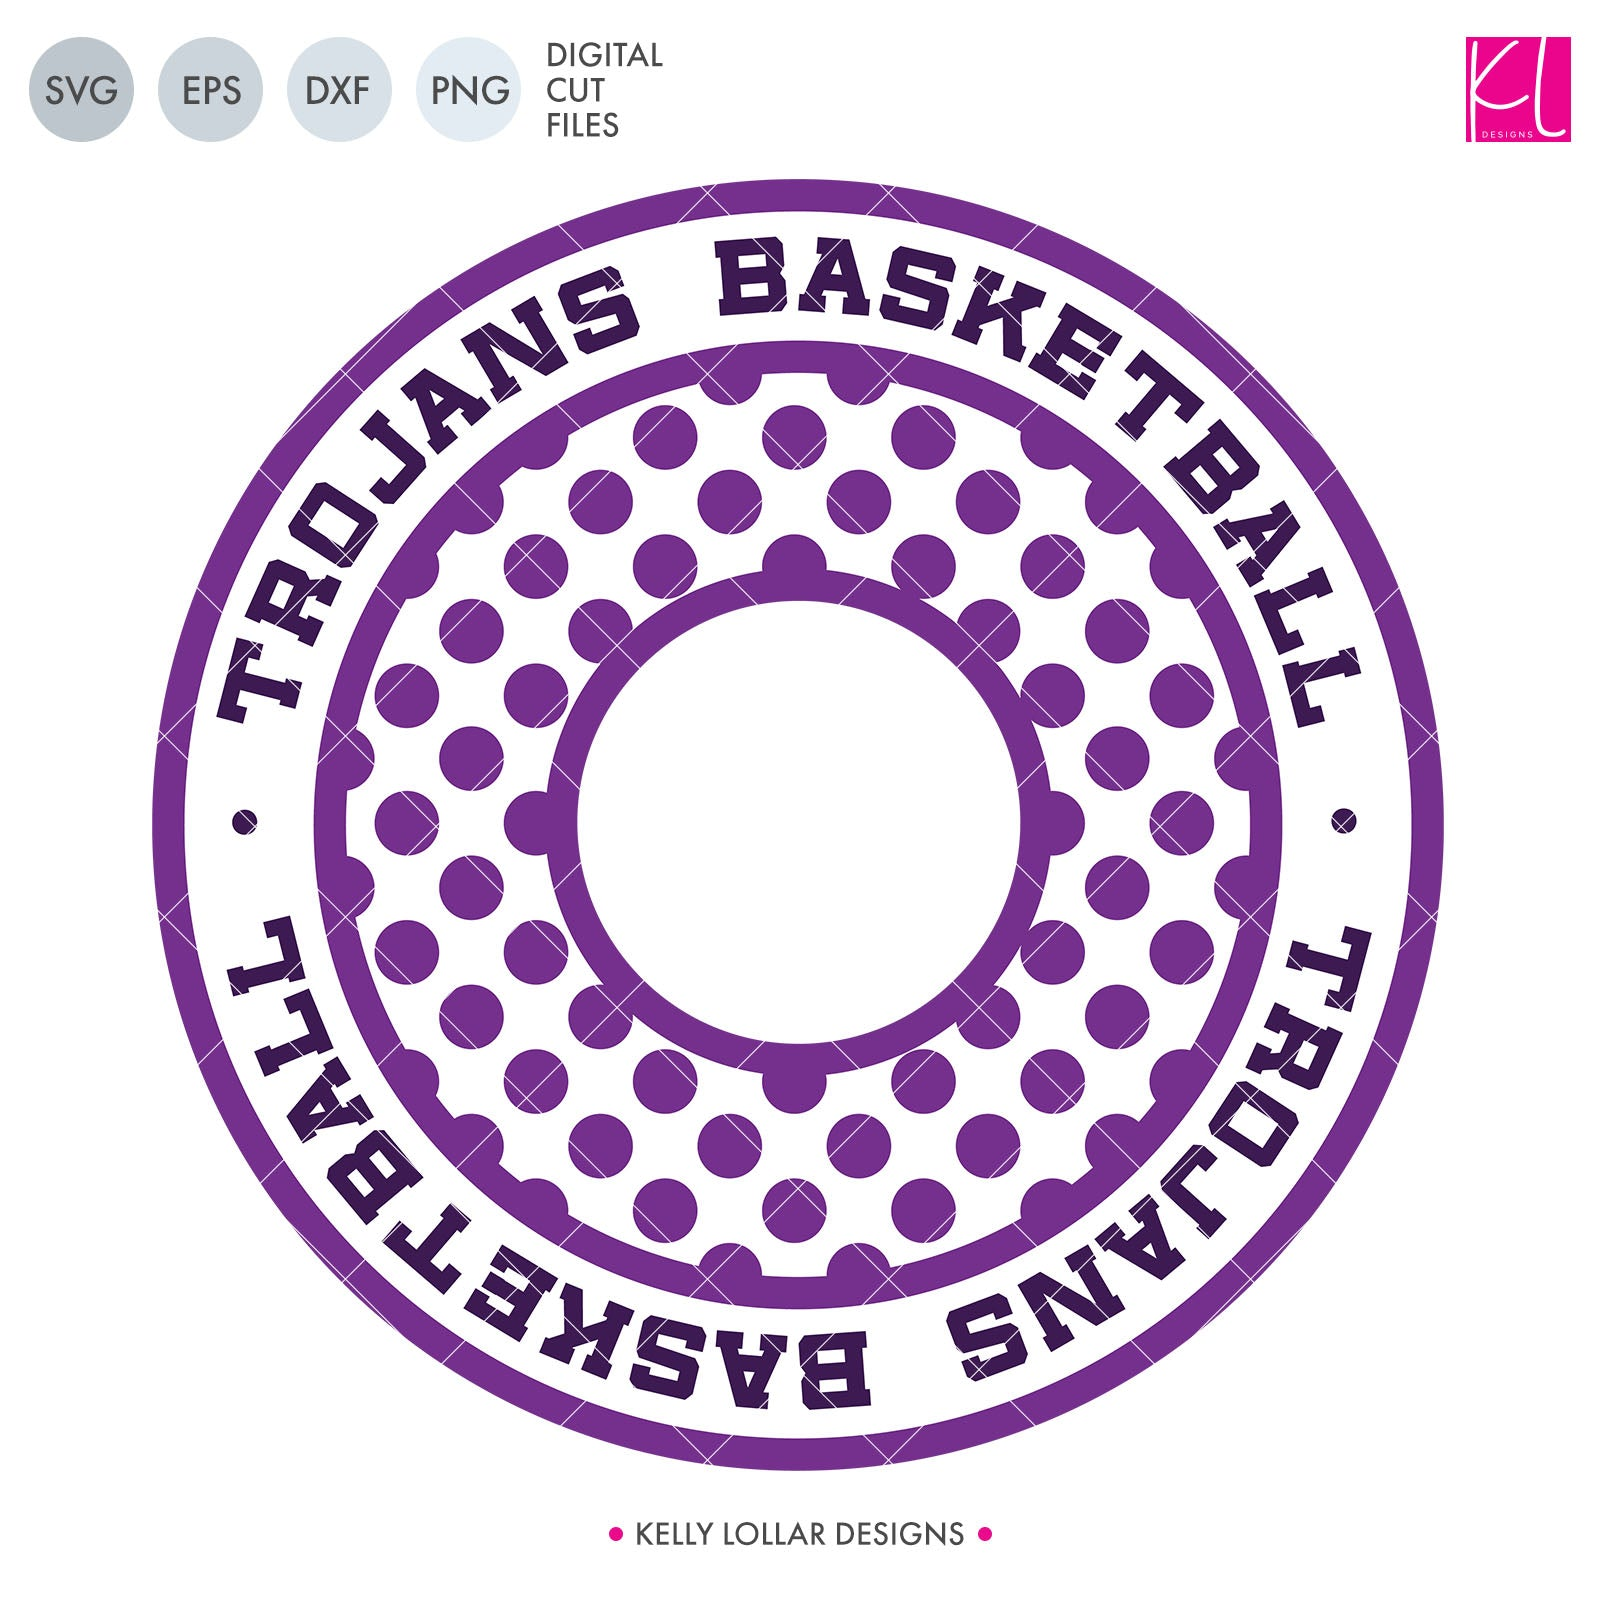 Trojans Basketball Bundle | SVG DXF EPS PNG Cut Files It's basketball season, so you Trojan Basketball crafter know what that means ... new spirit shirts! This fourteen-piece bundle includes a little something for everyone - from girly and cute